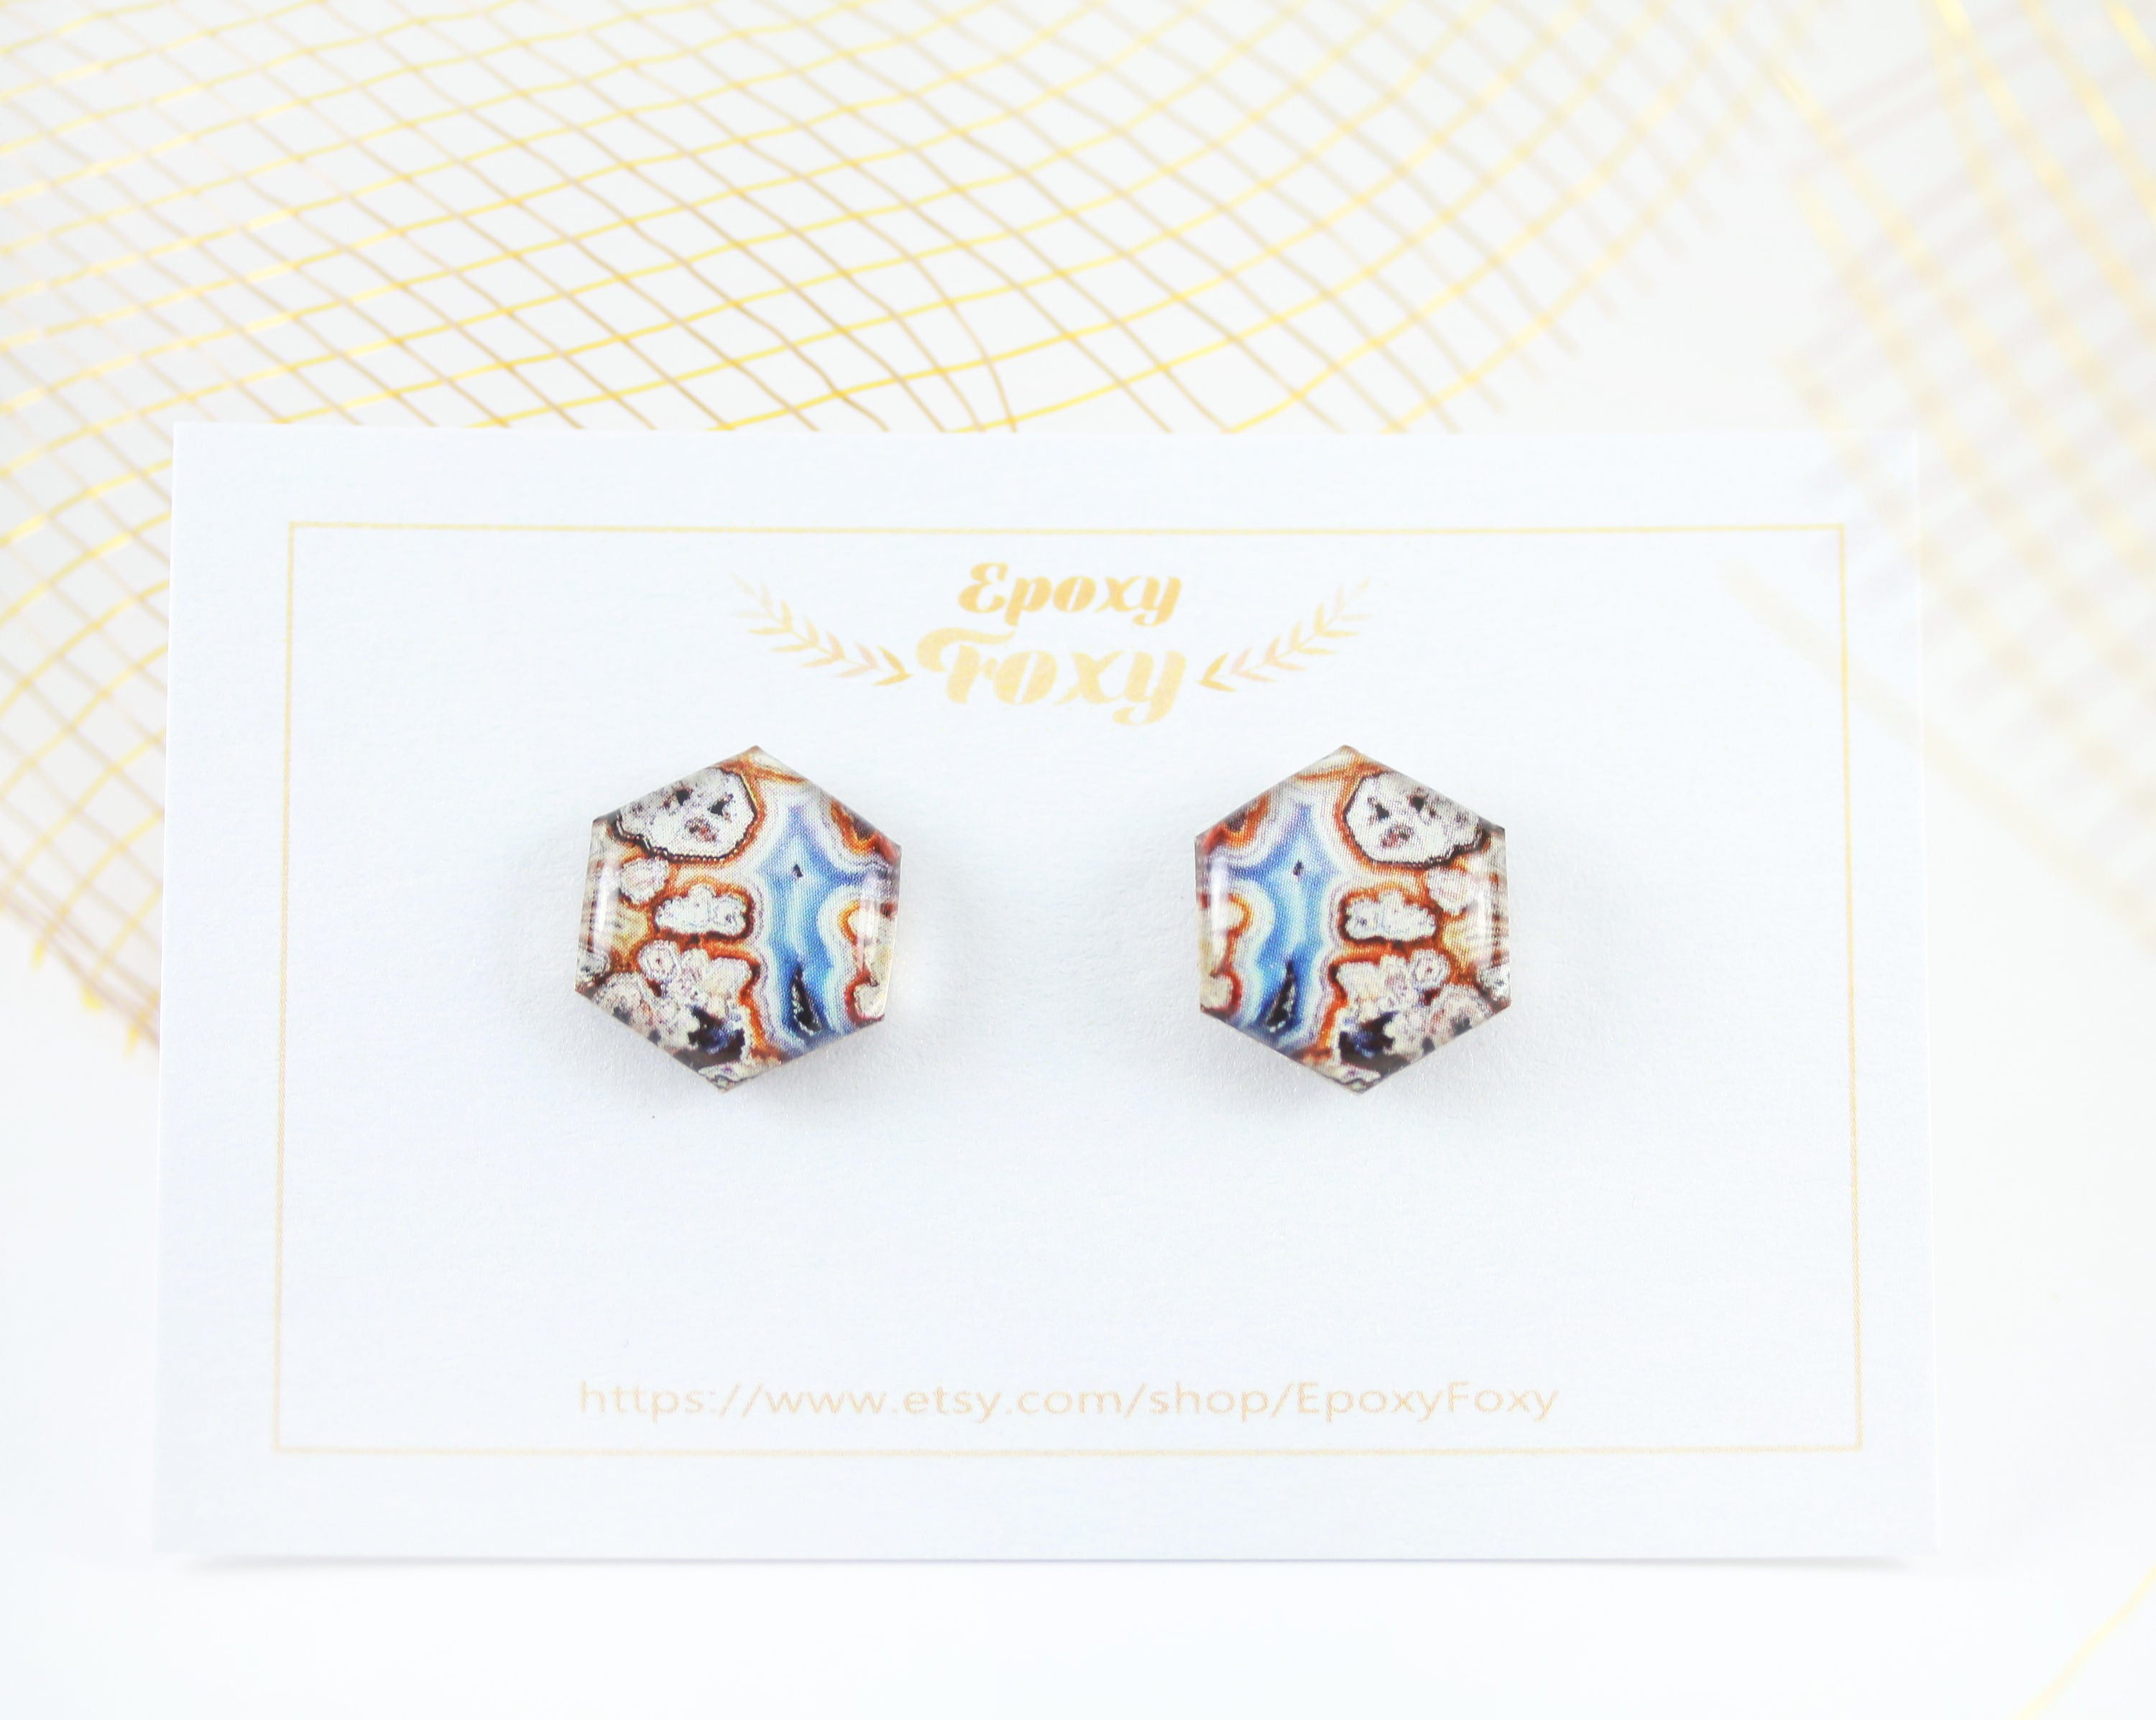 erc amrita jewelry hamptons singh product hexagon shop earrings